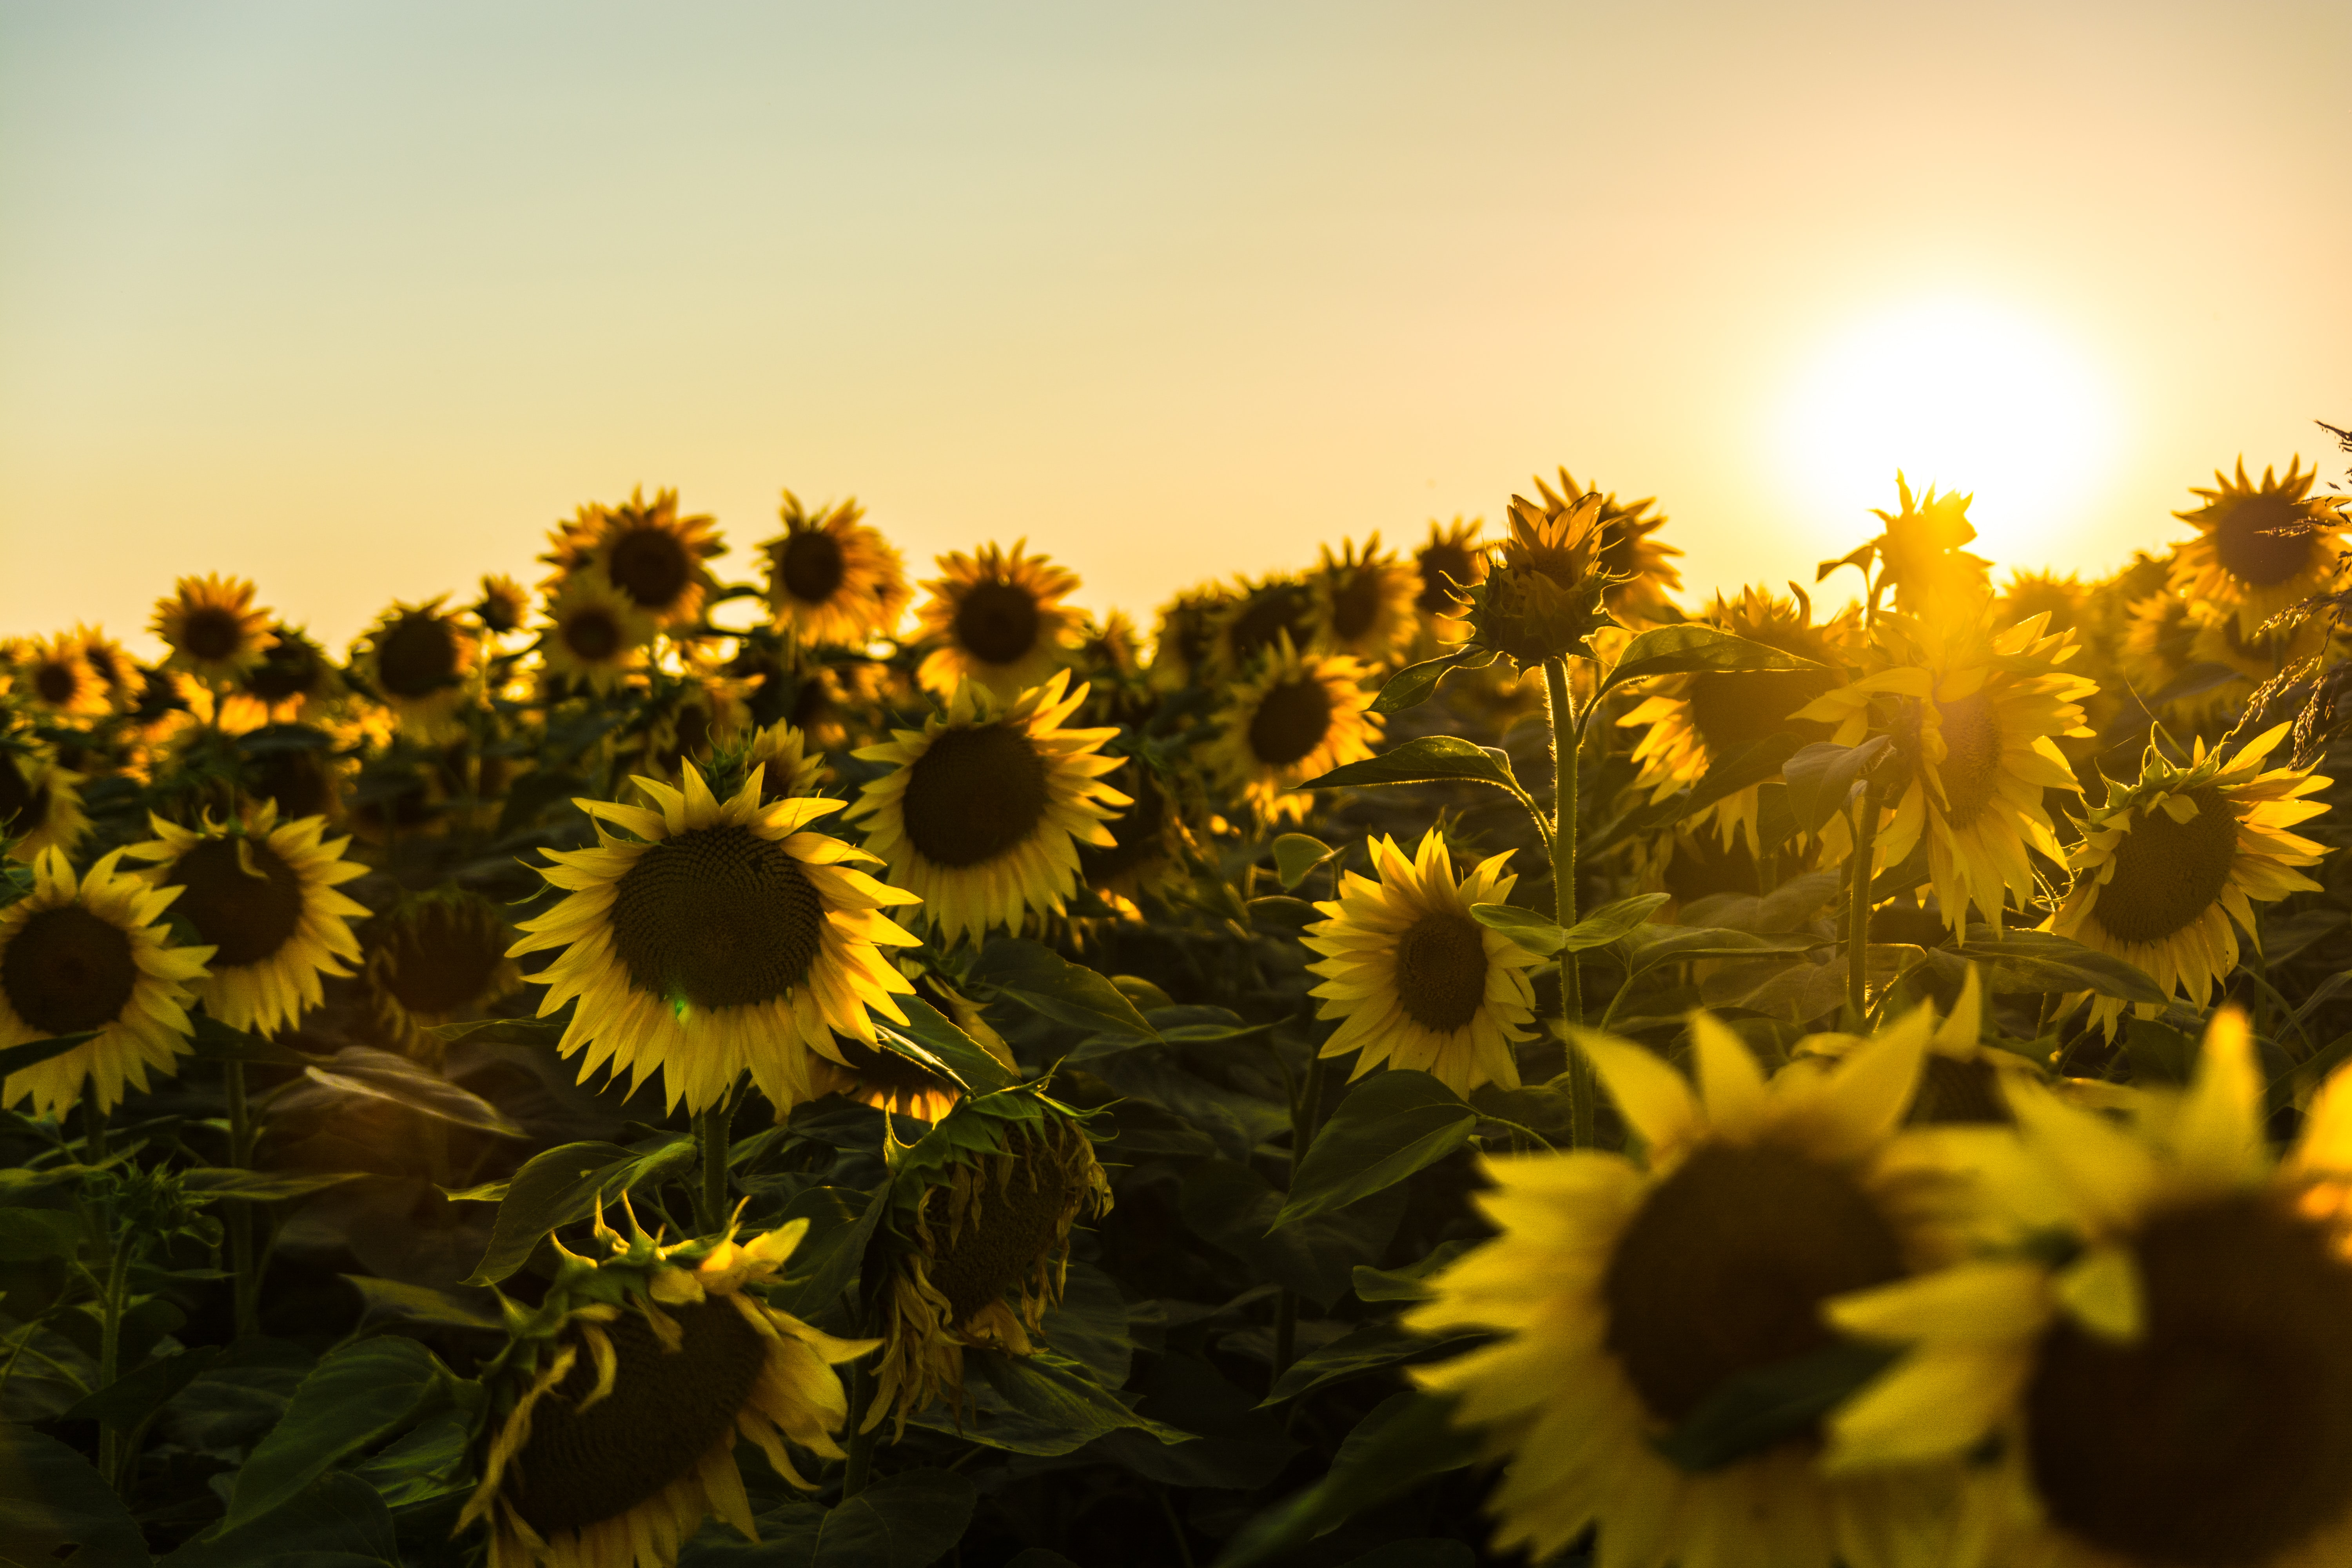 yellow sunflower field during sunset